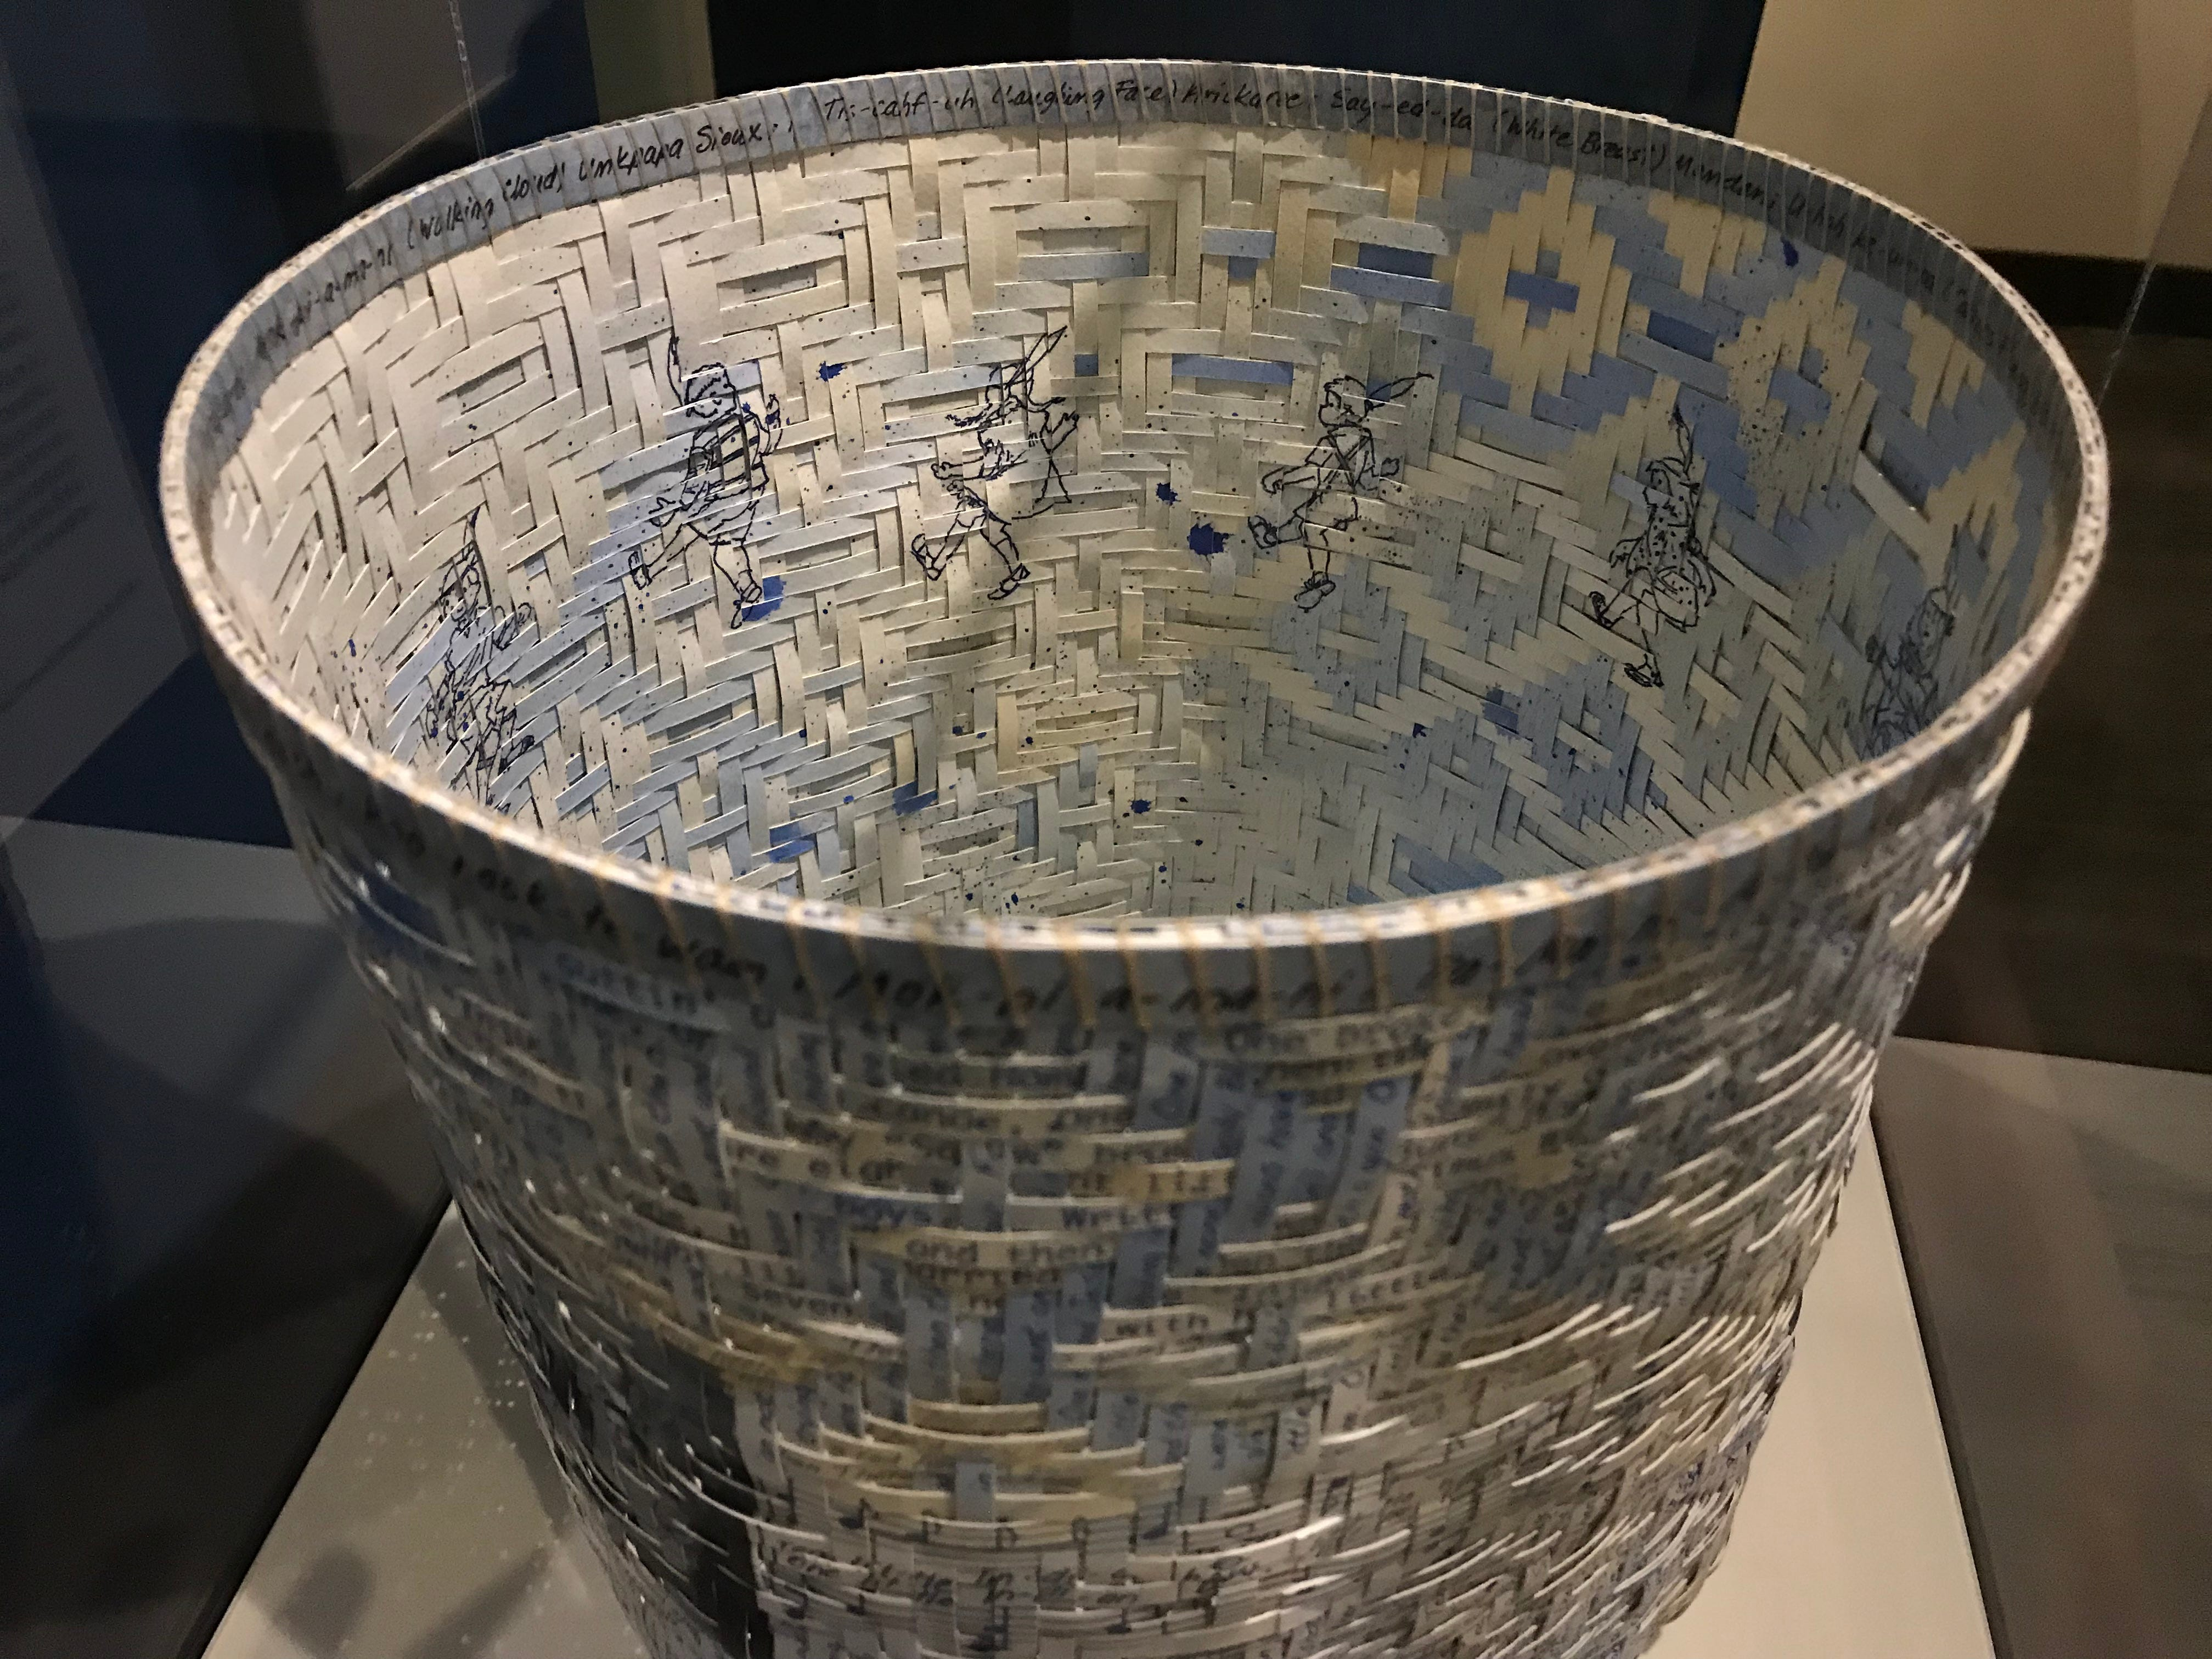 """Inside the A single-weave basket by Artist Shan Goshorn titled """"10 Little Indians,"""" kids can be seen dancing around. The basket is part of the  """"Away From Home: American Indian Boarding School Stories"""" exhibit at the Heard Museum."""